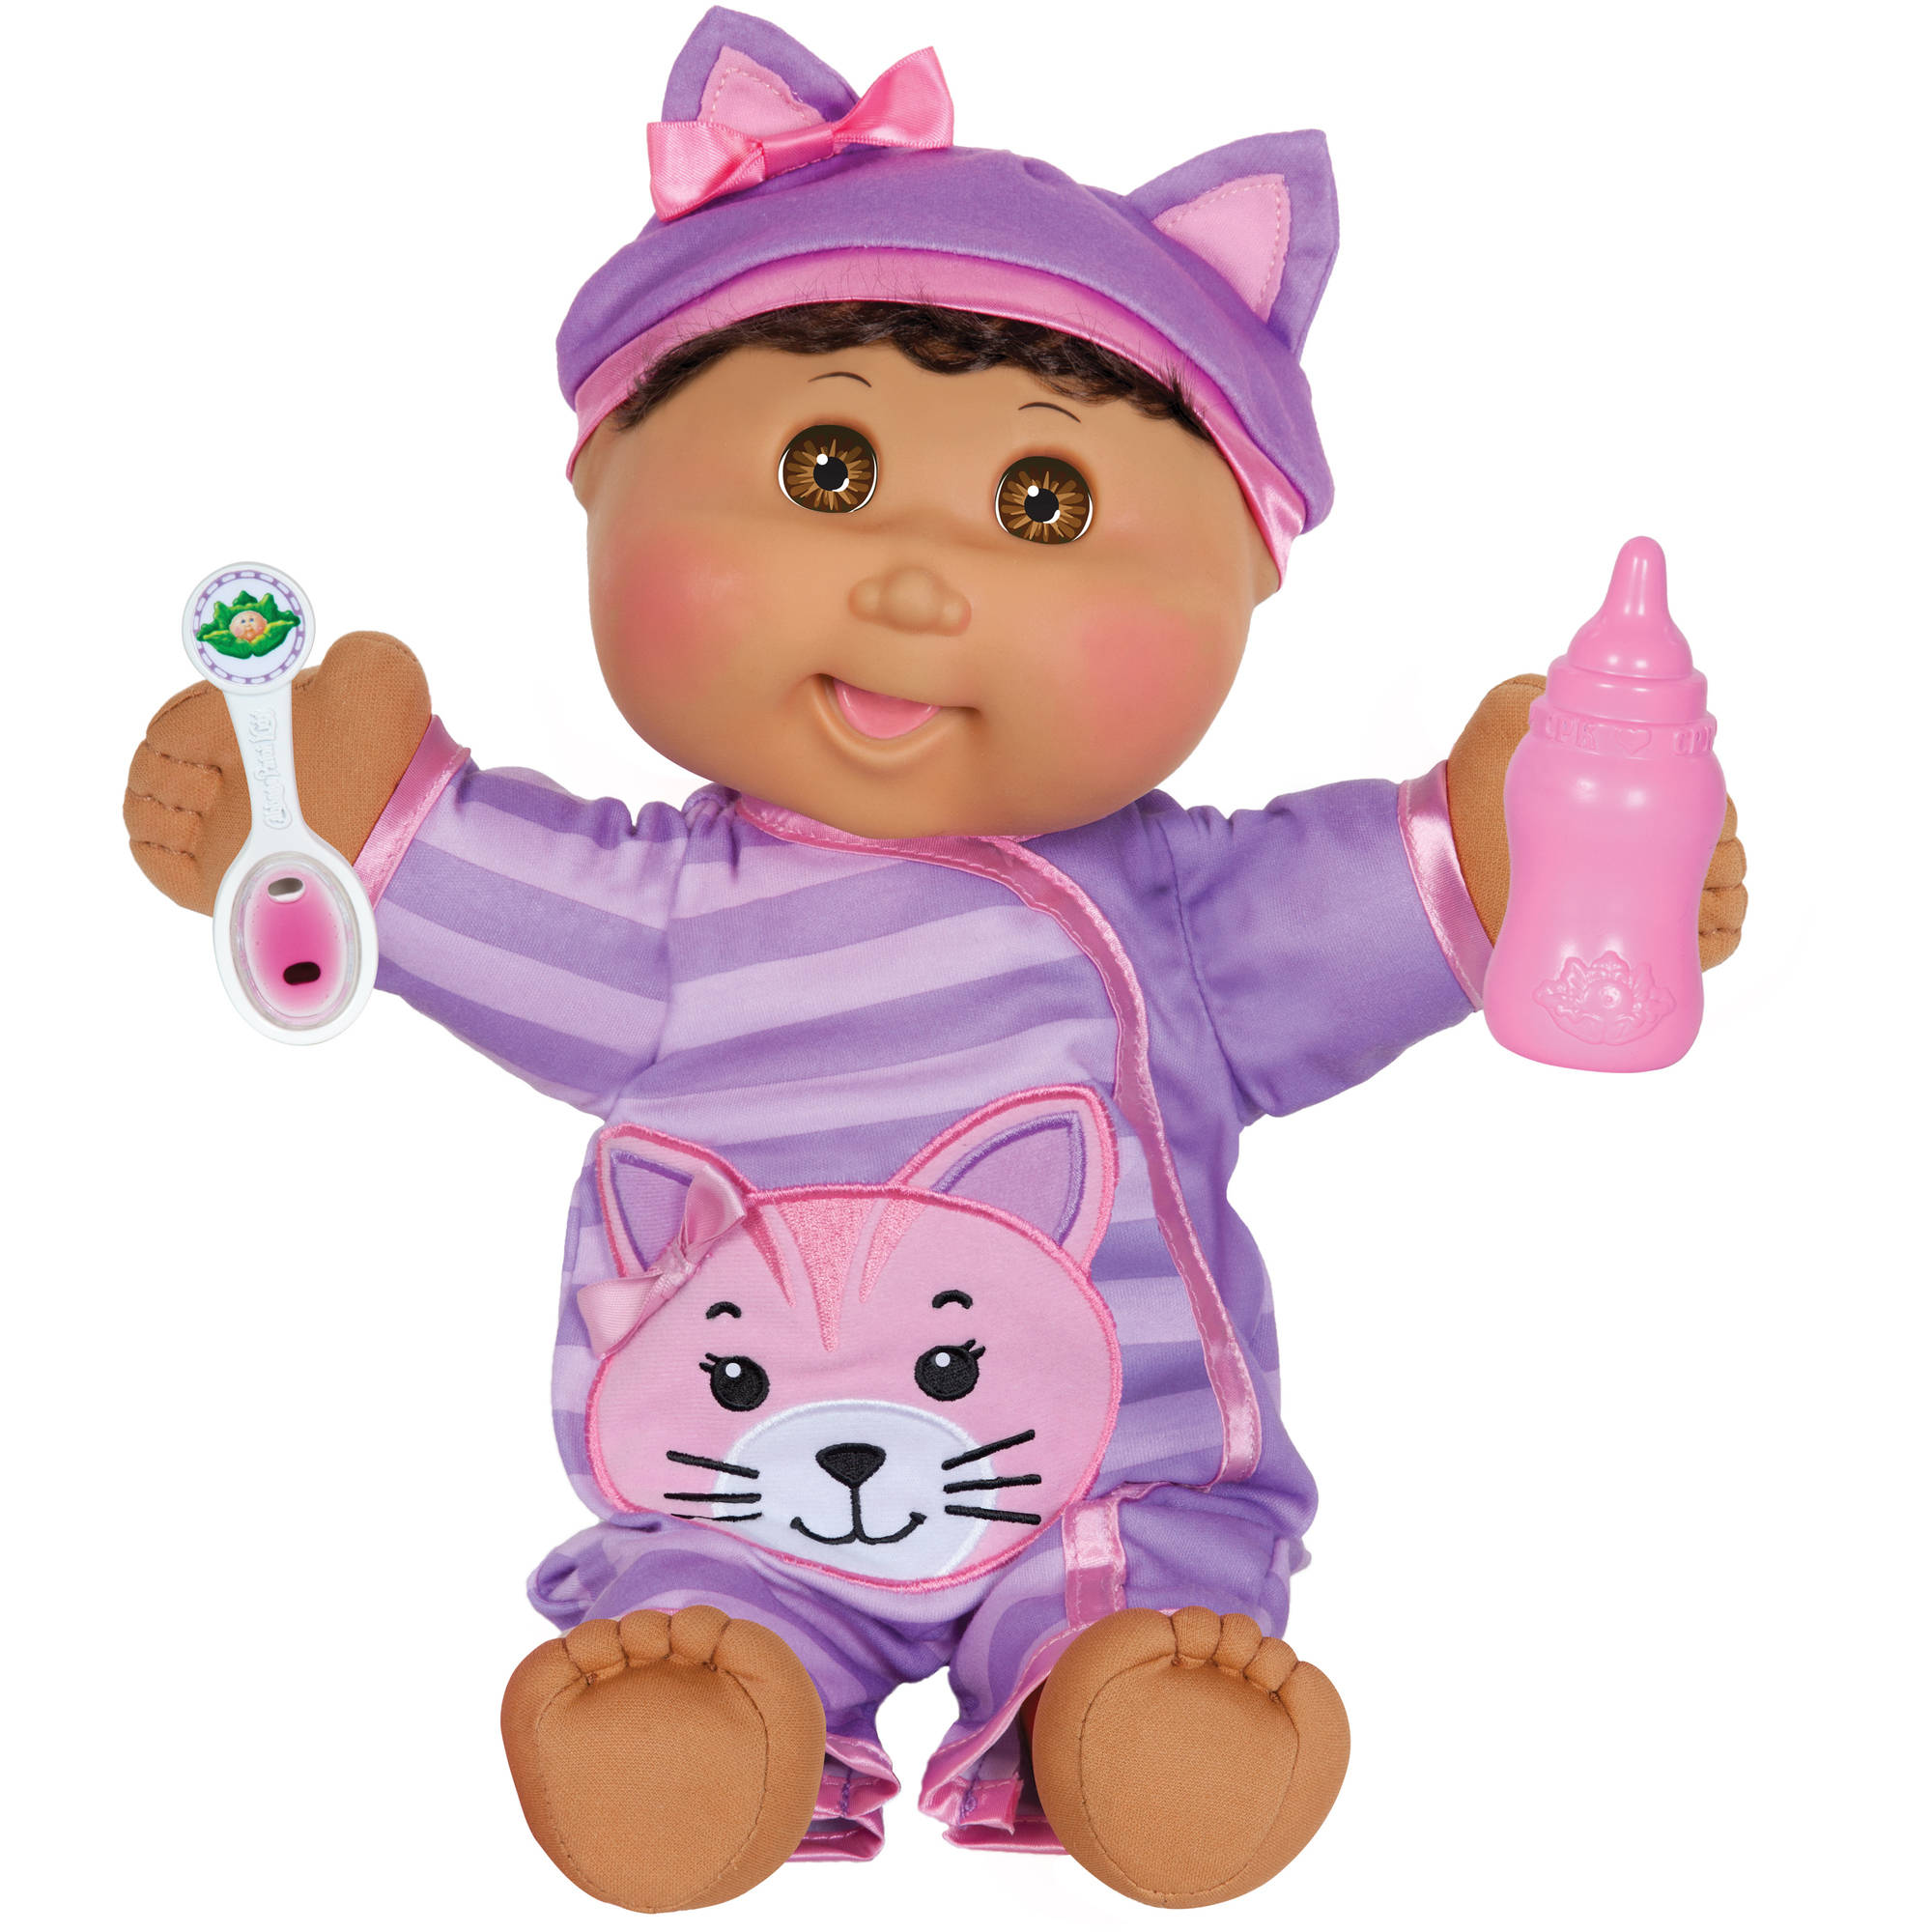 """Cabbage Patch Kids 14"""" Baby So Real Doll, Dark Hair/Brown Eye Girl"""